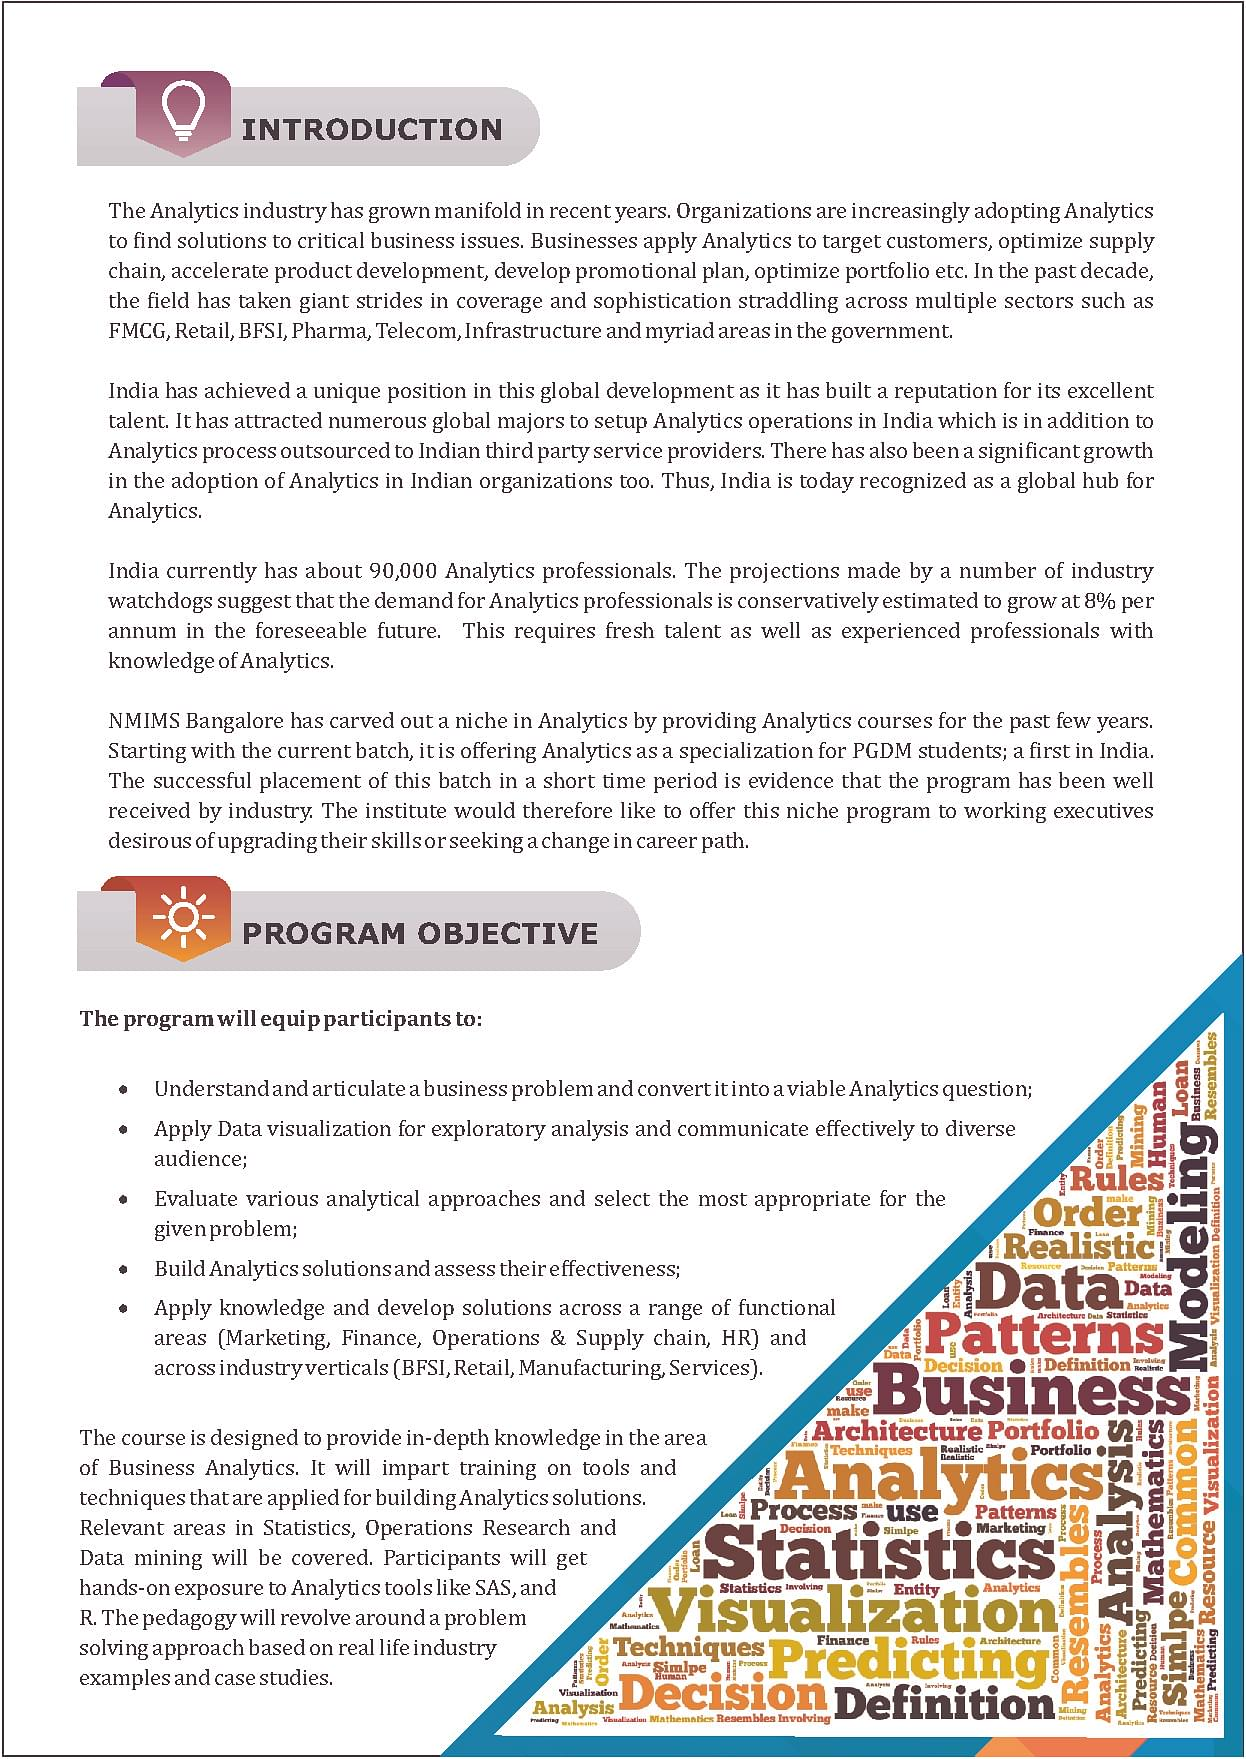 Narsee Monjee Institute of Management Studies - [NMIMS